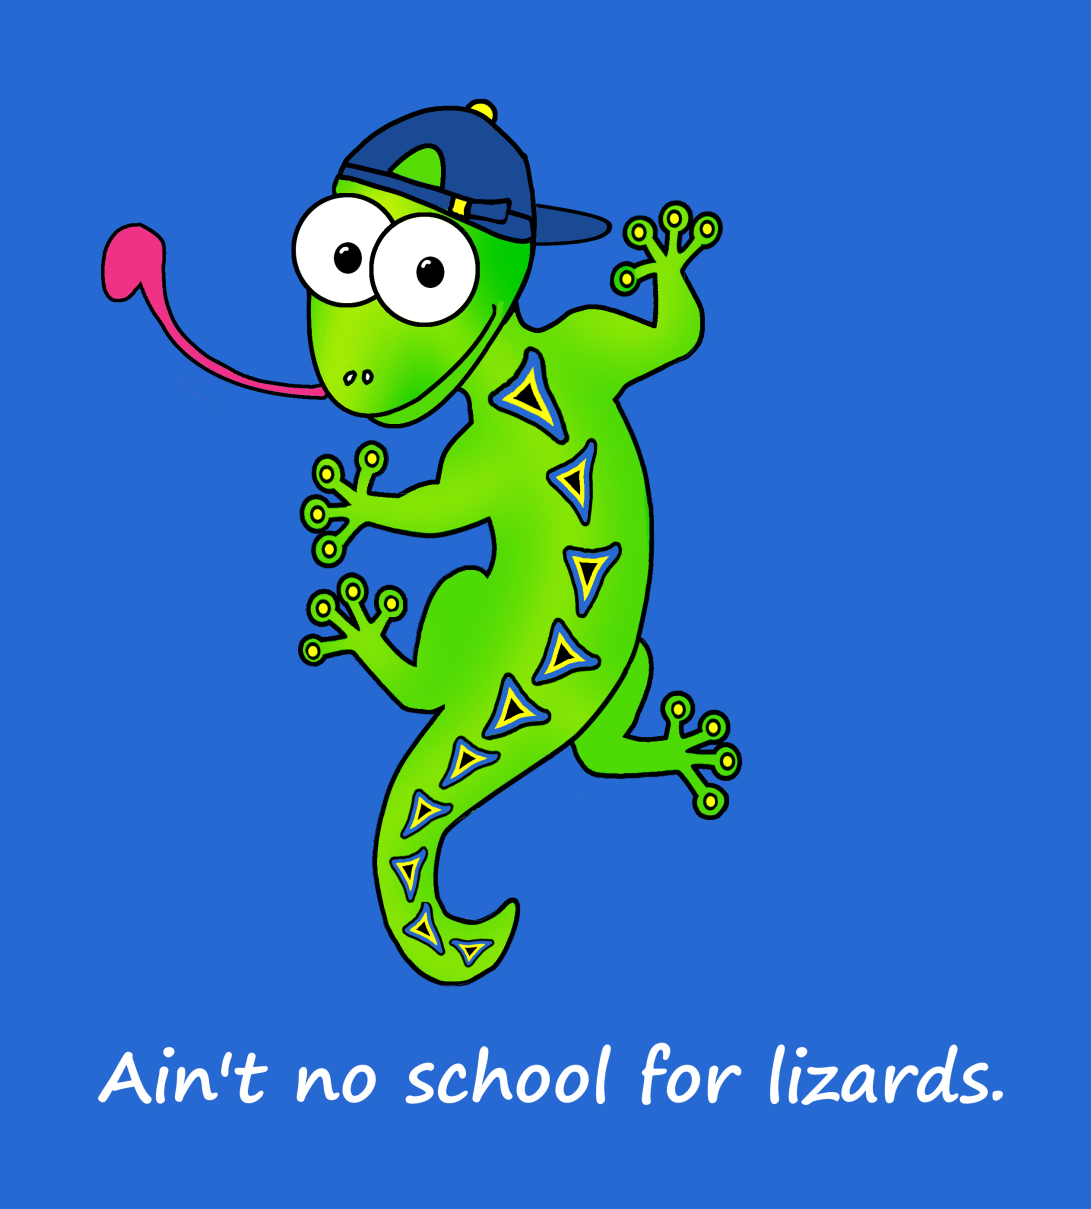 No school for lizards